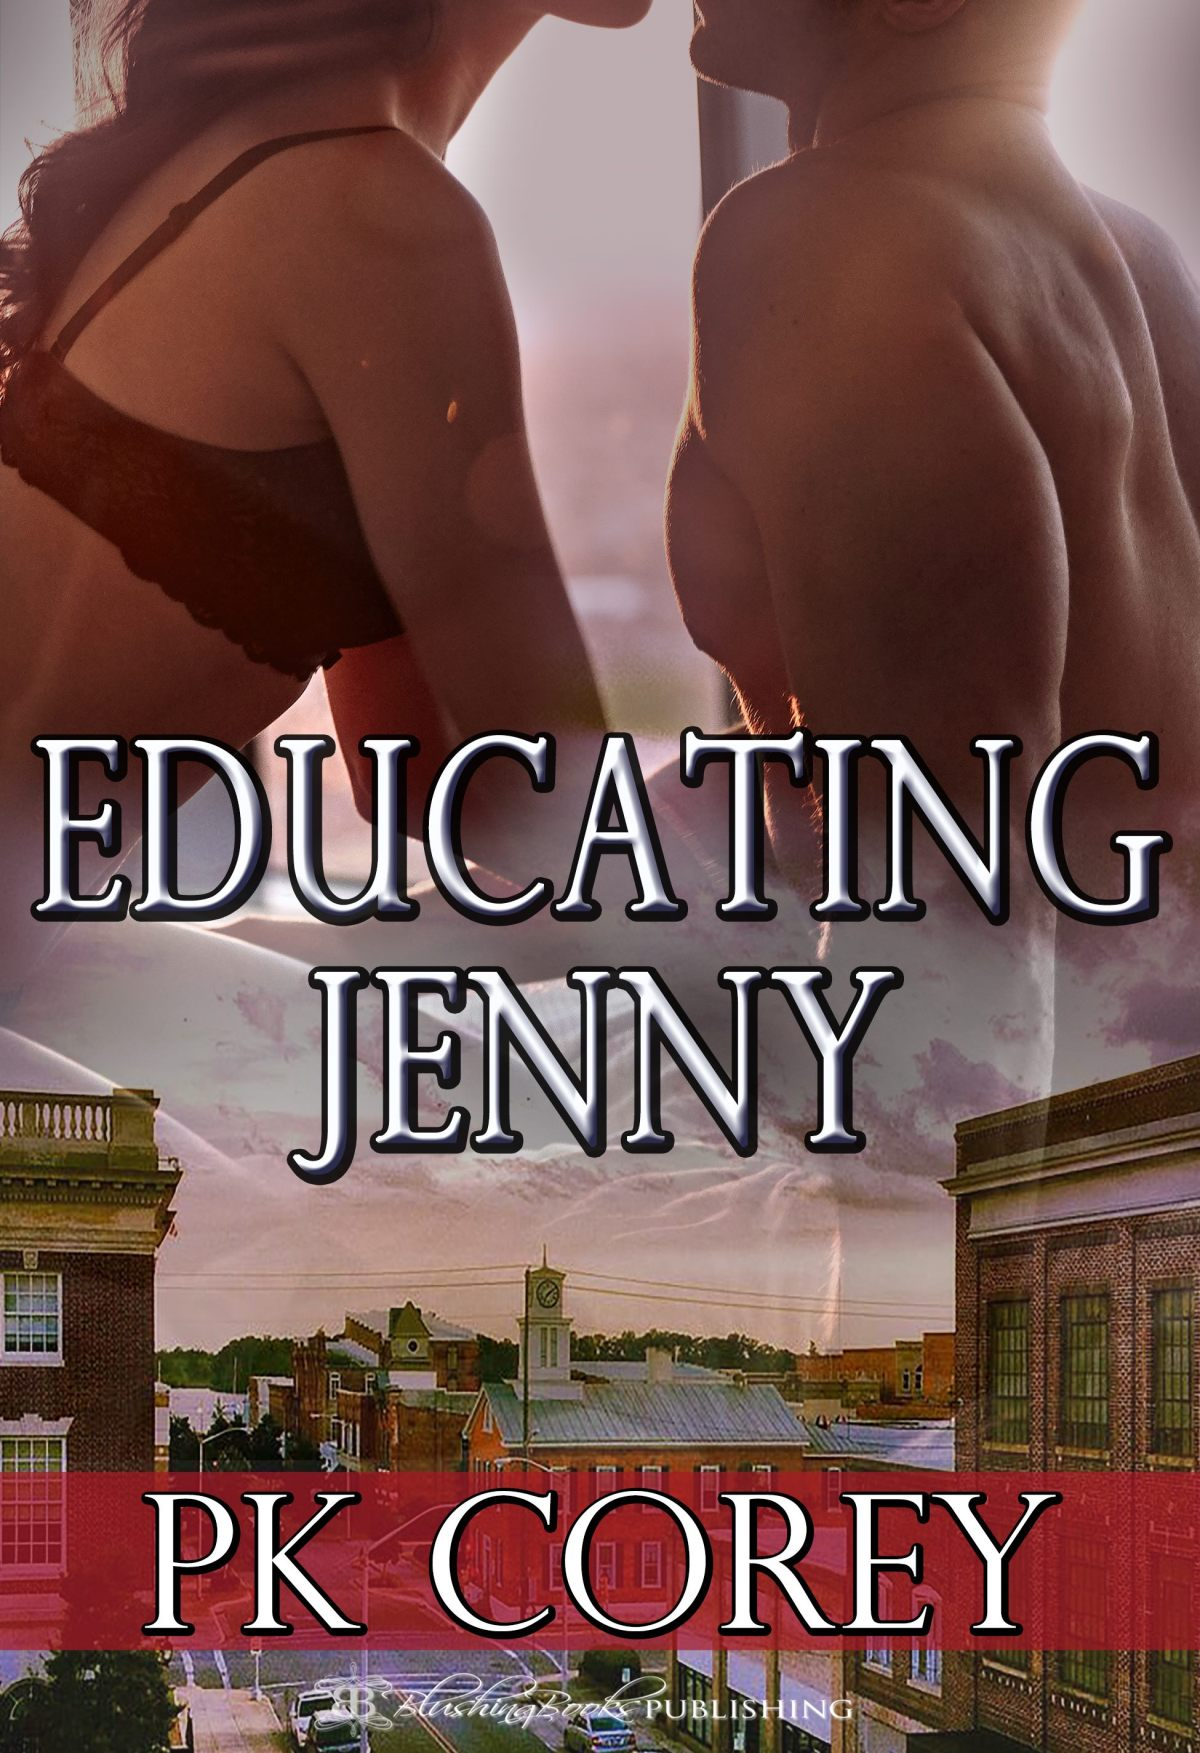 Educating Jenny by PK Corey